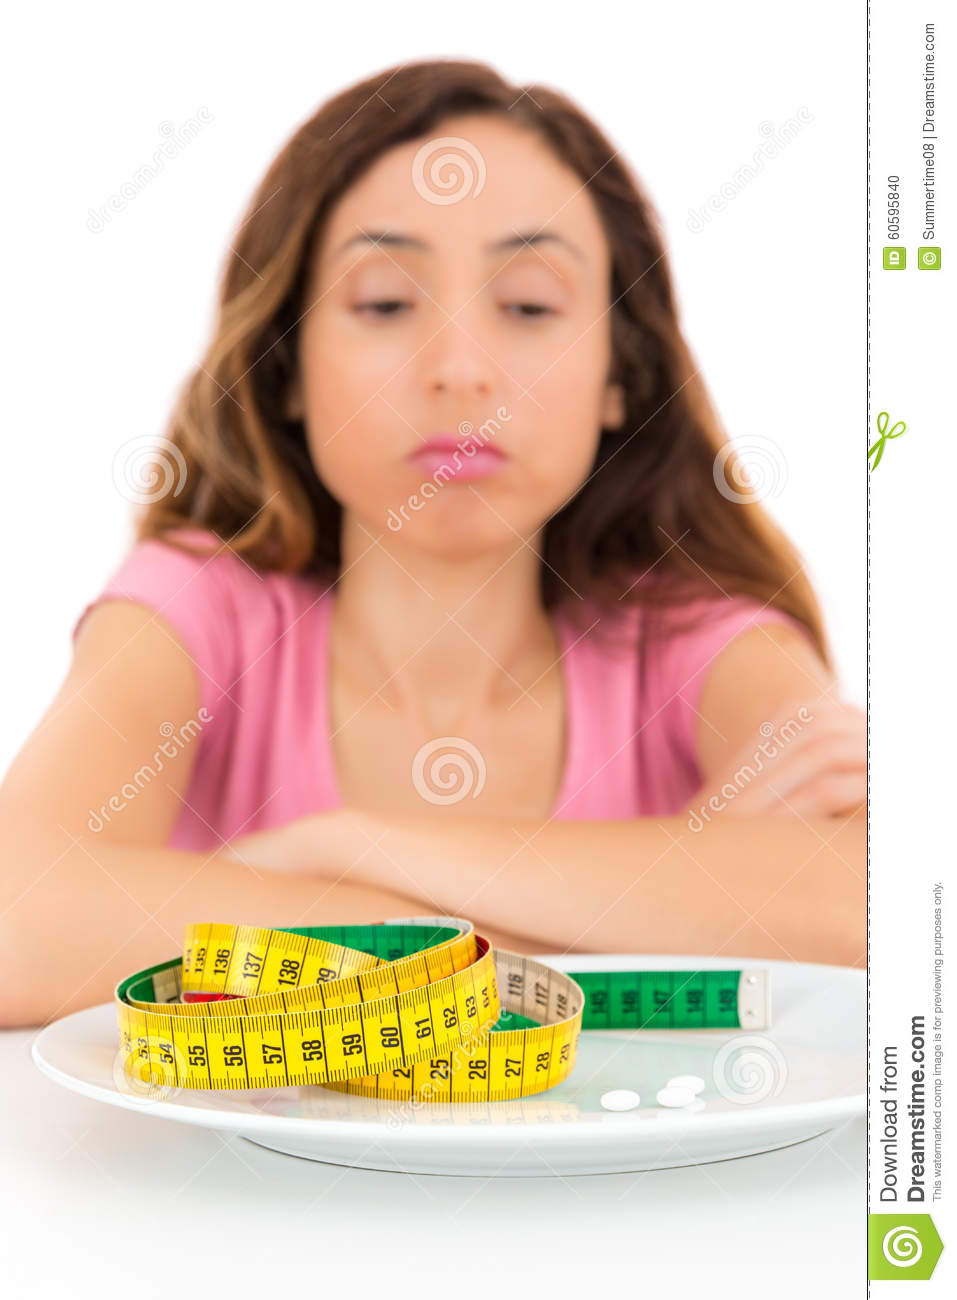 Weight loss woman unhappy